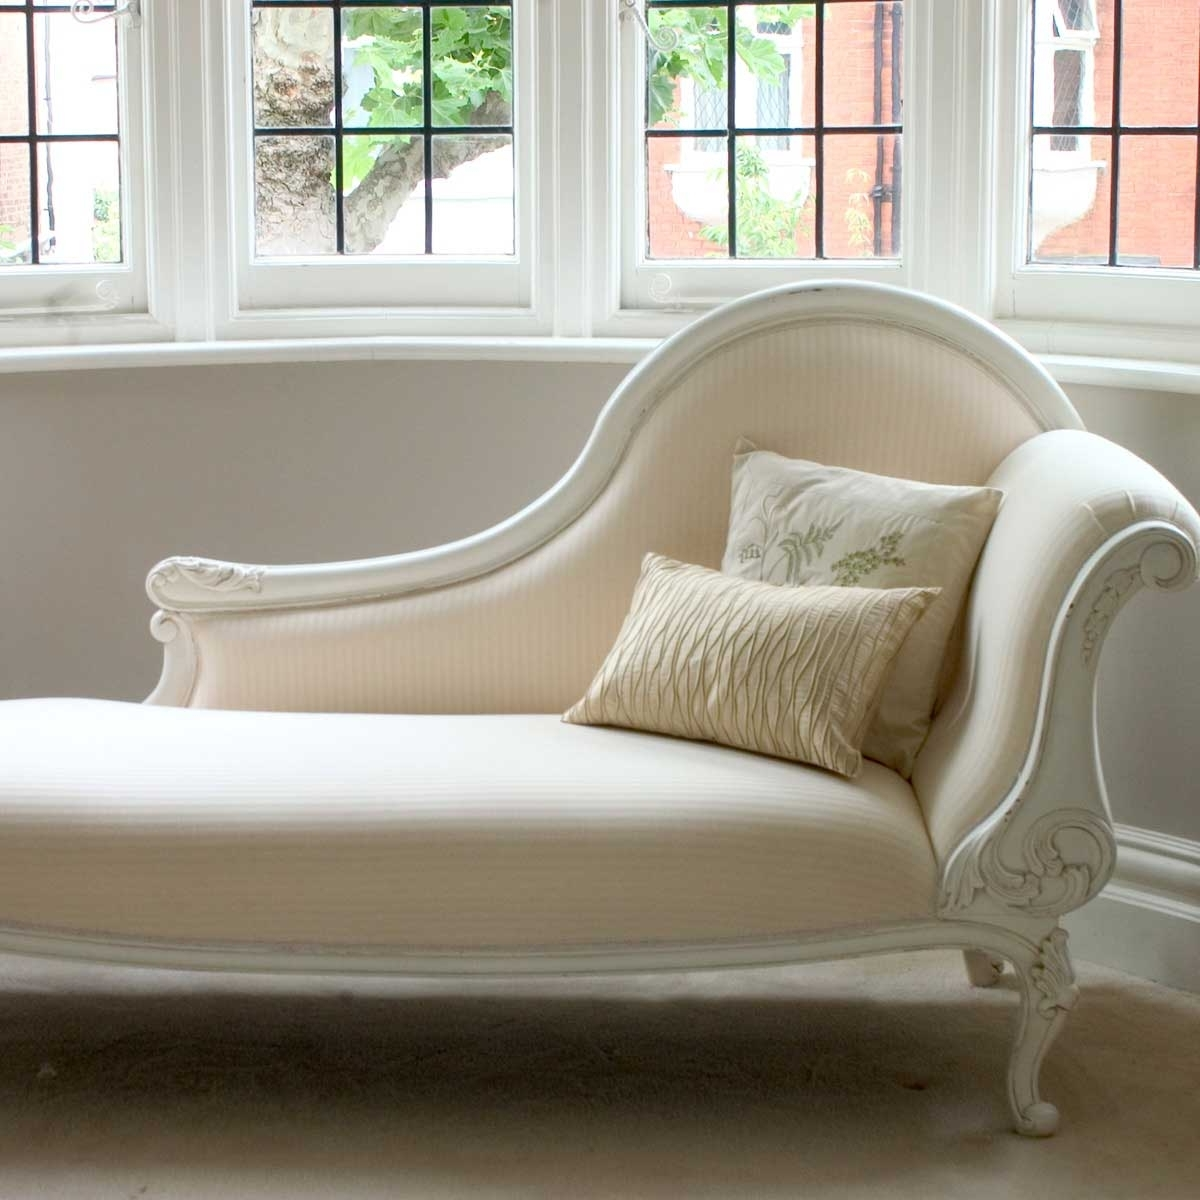 2017 Chaise Lounge Beds With Regard To Bedroom Chaise Lounge  (View 2 of 15)